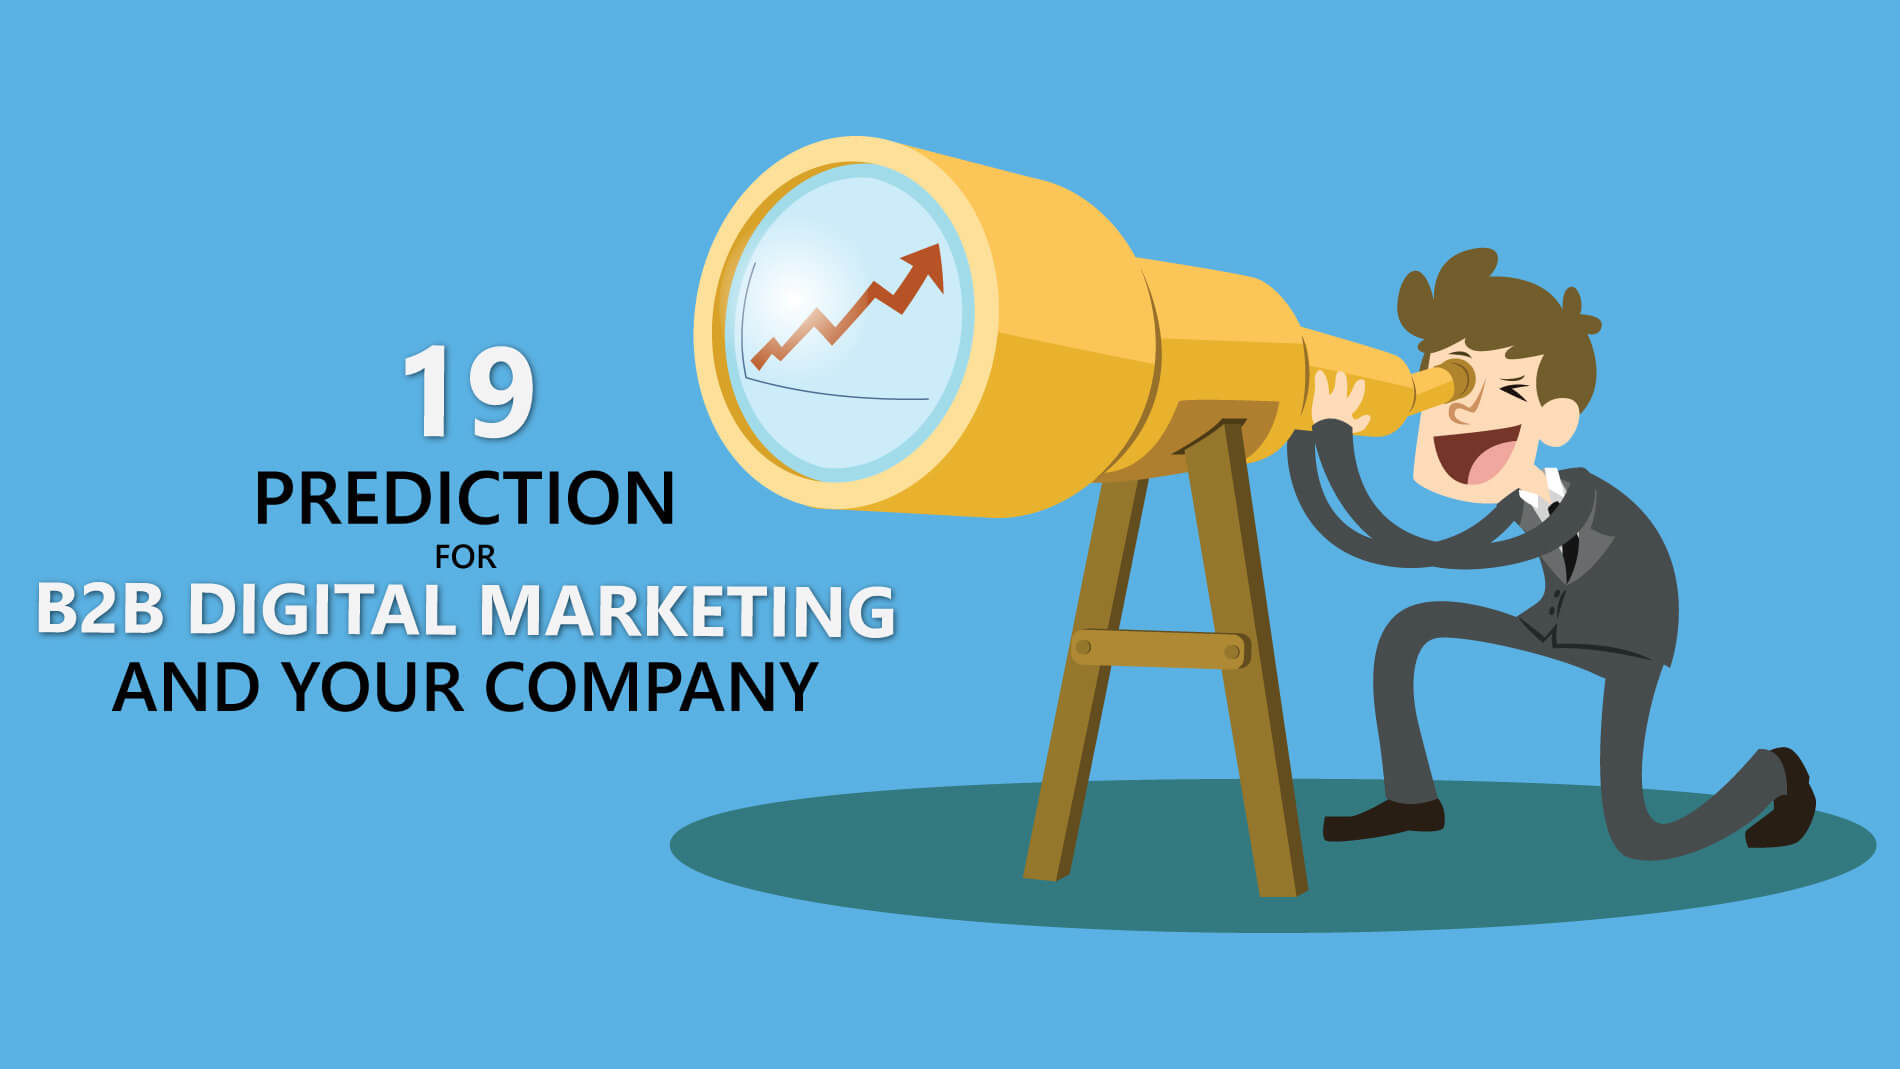 19 b2b digital marketing predictions in 2021 that will affect your digital marketing in 2021